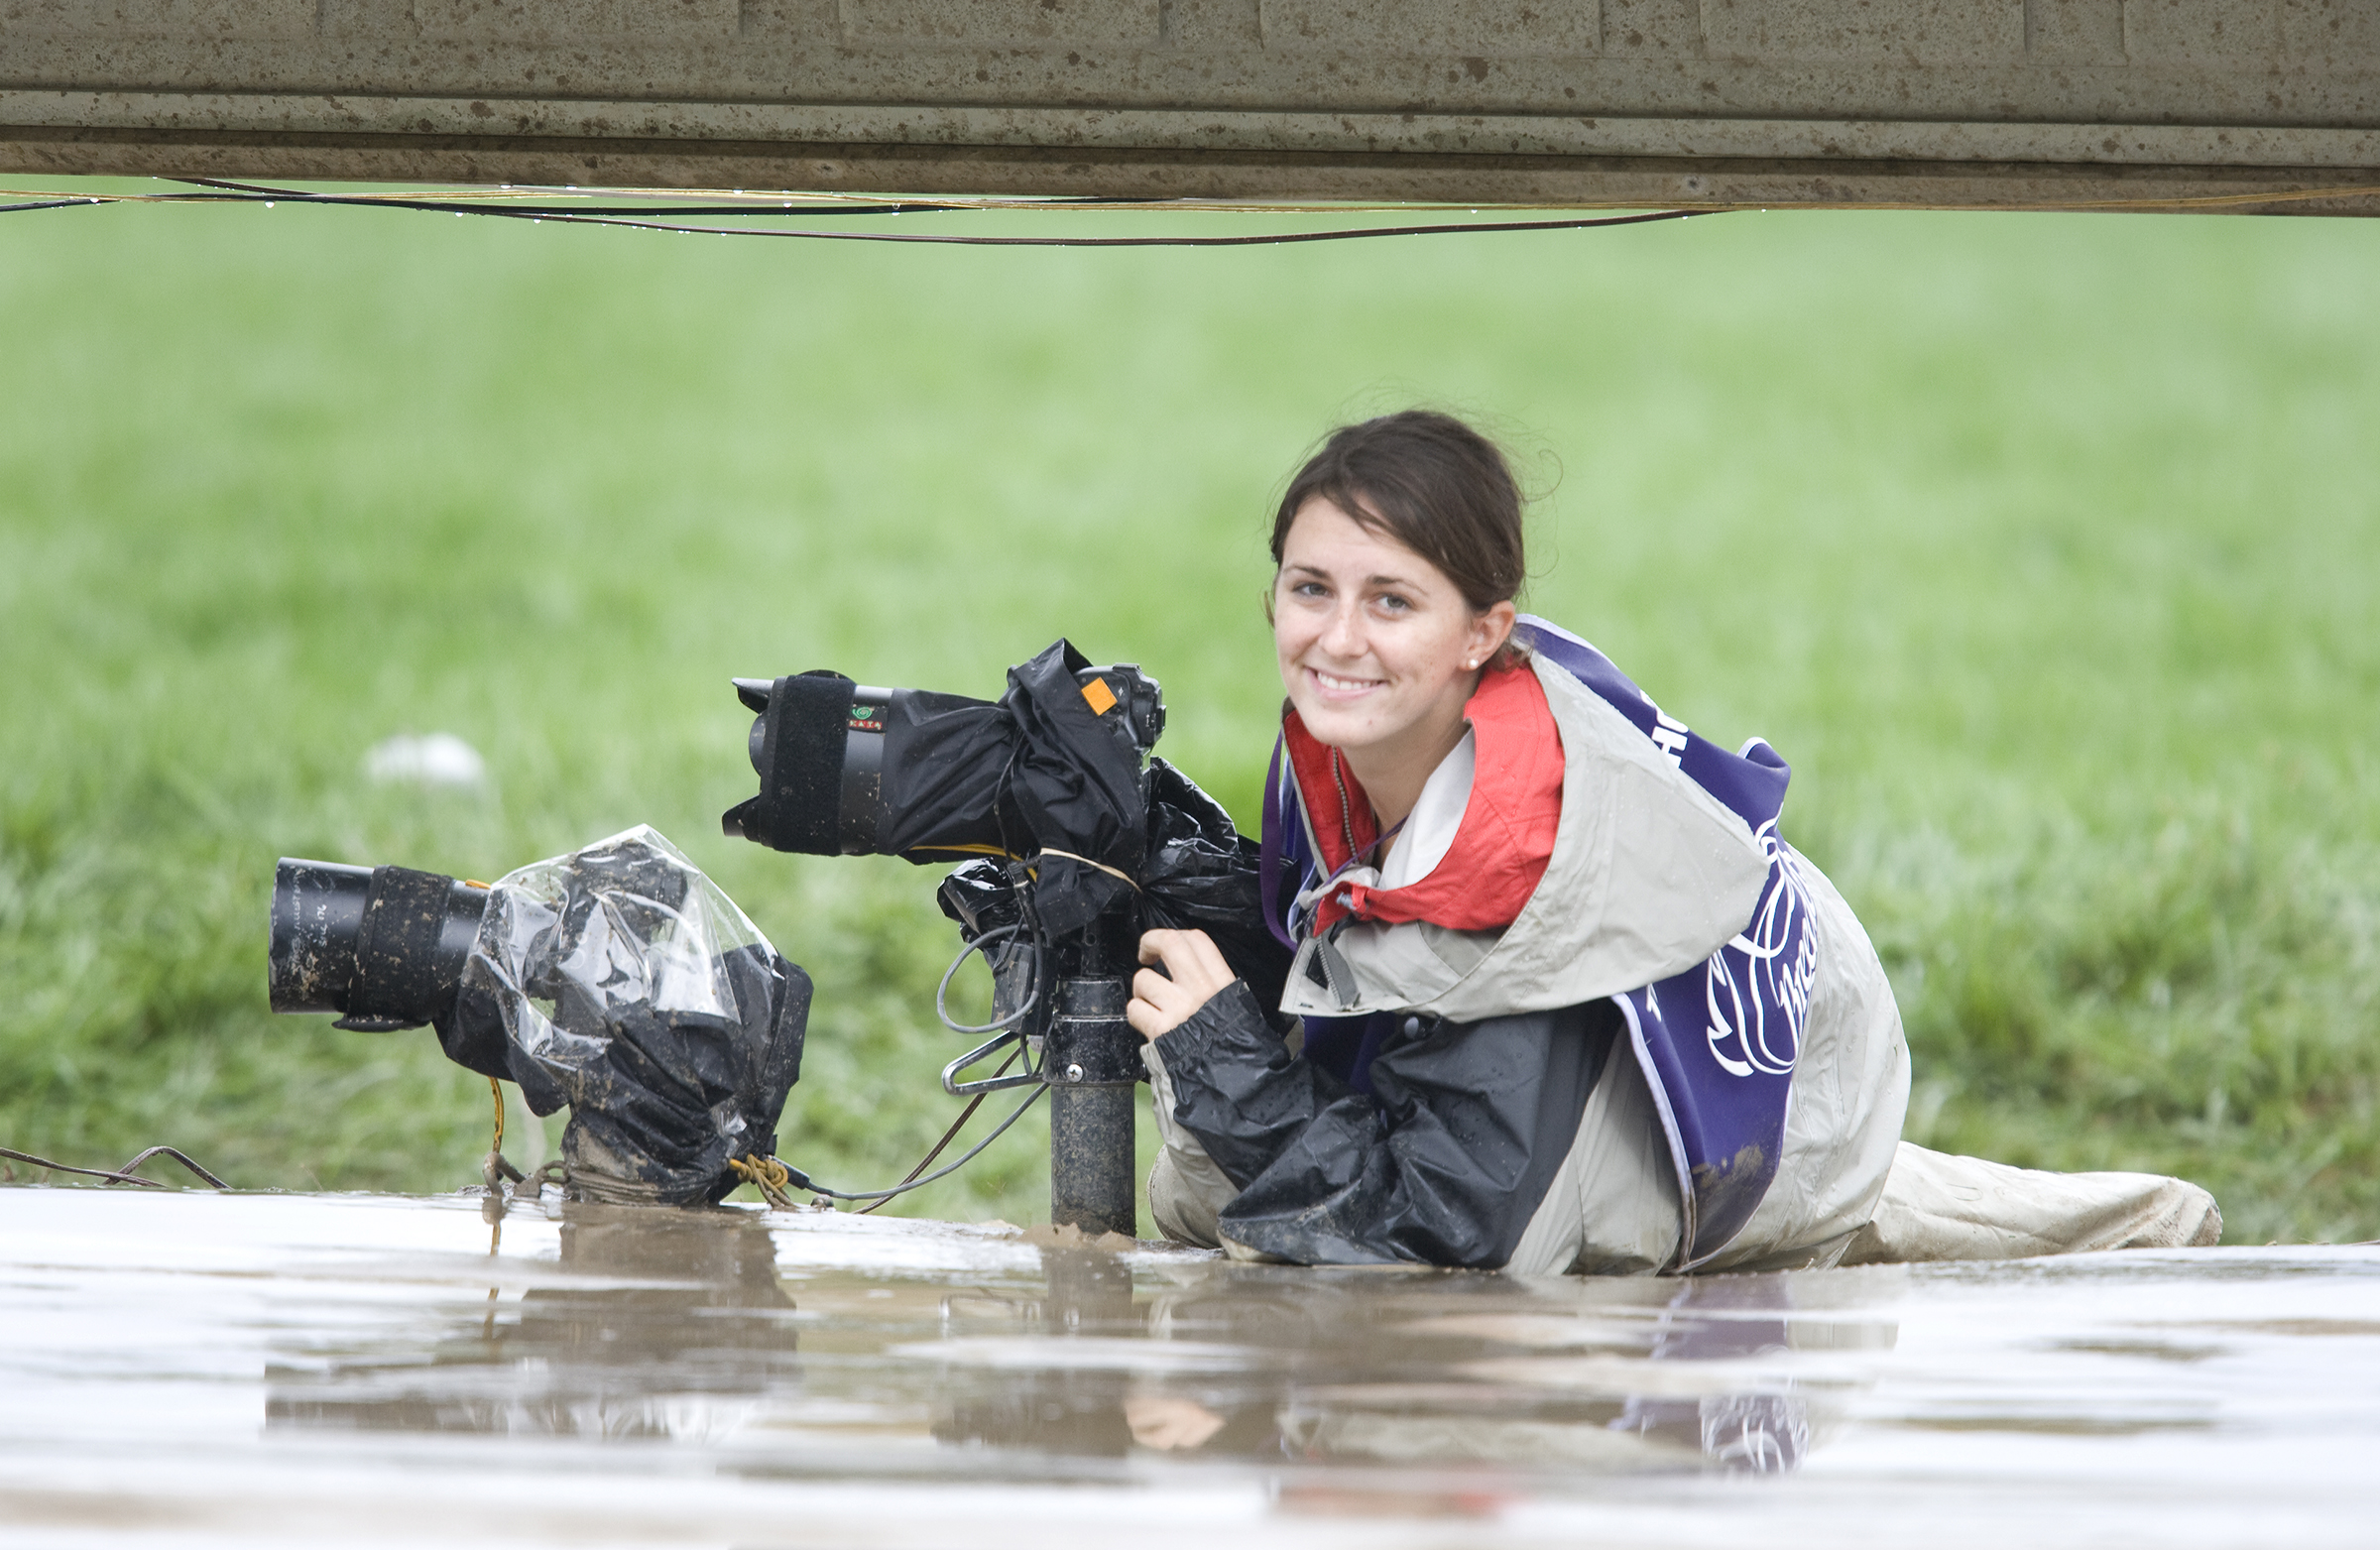 This actually isn't from the Derby. This is from the 2007 Breeder's Cup, but the idea is the same - mud, rail, cameras, me.